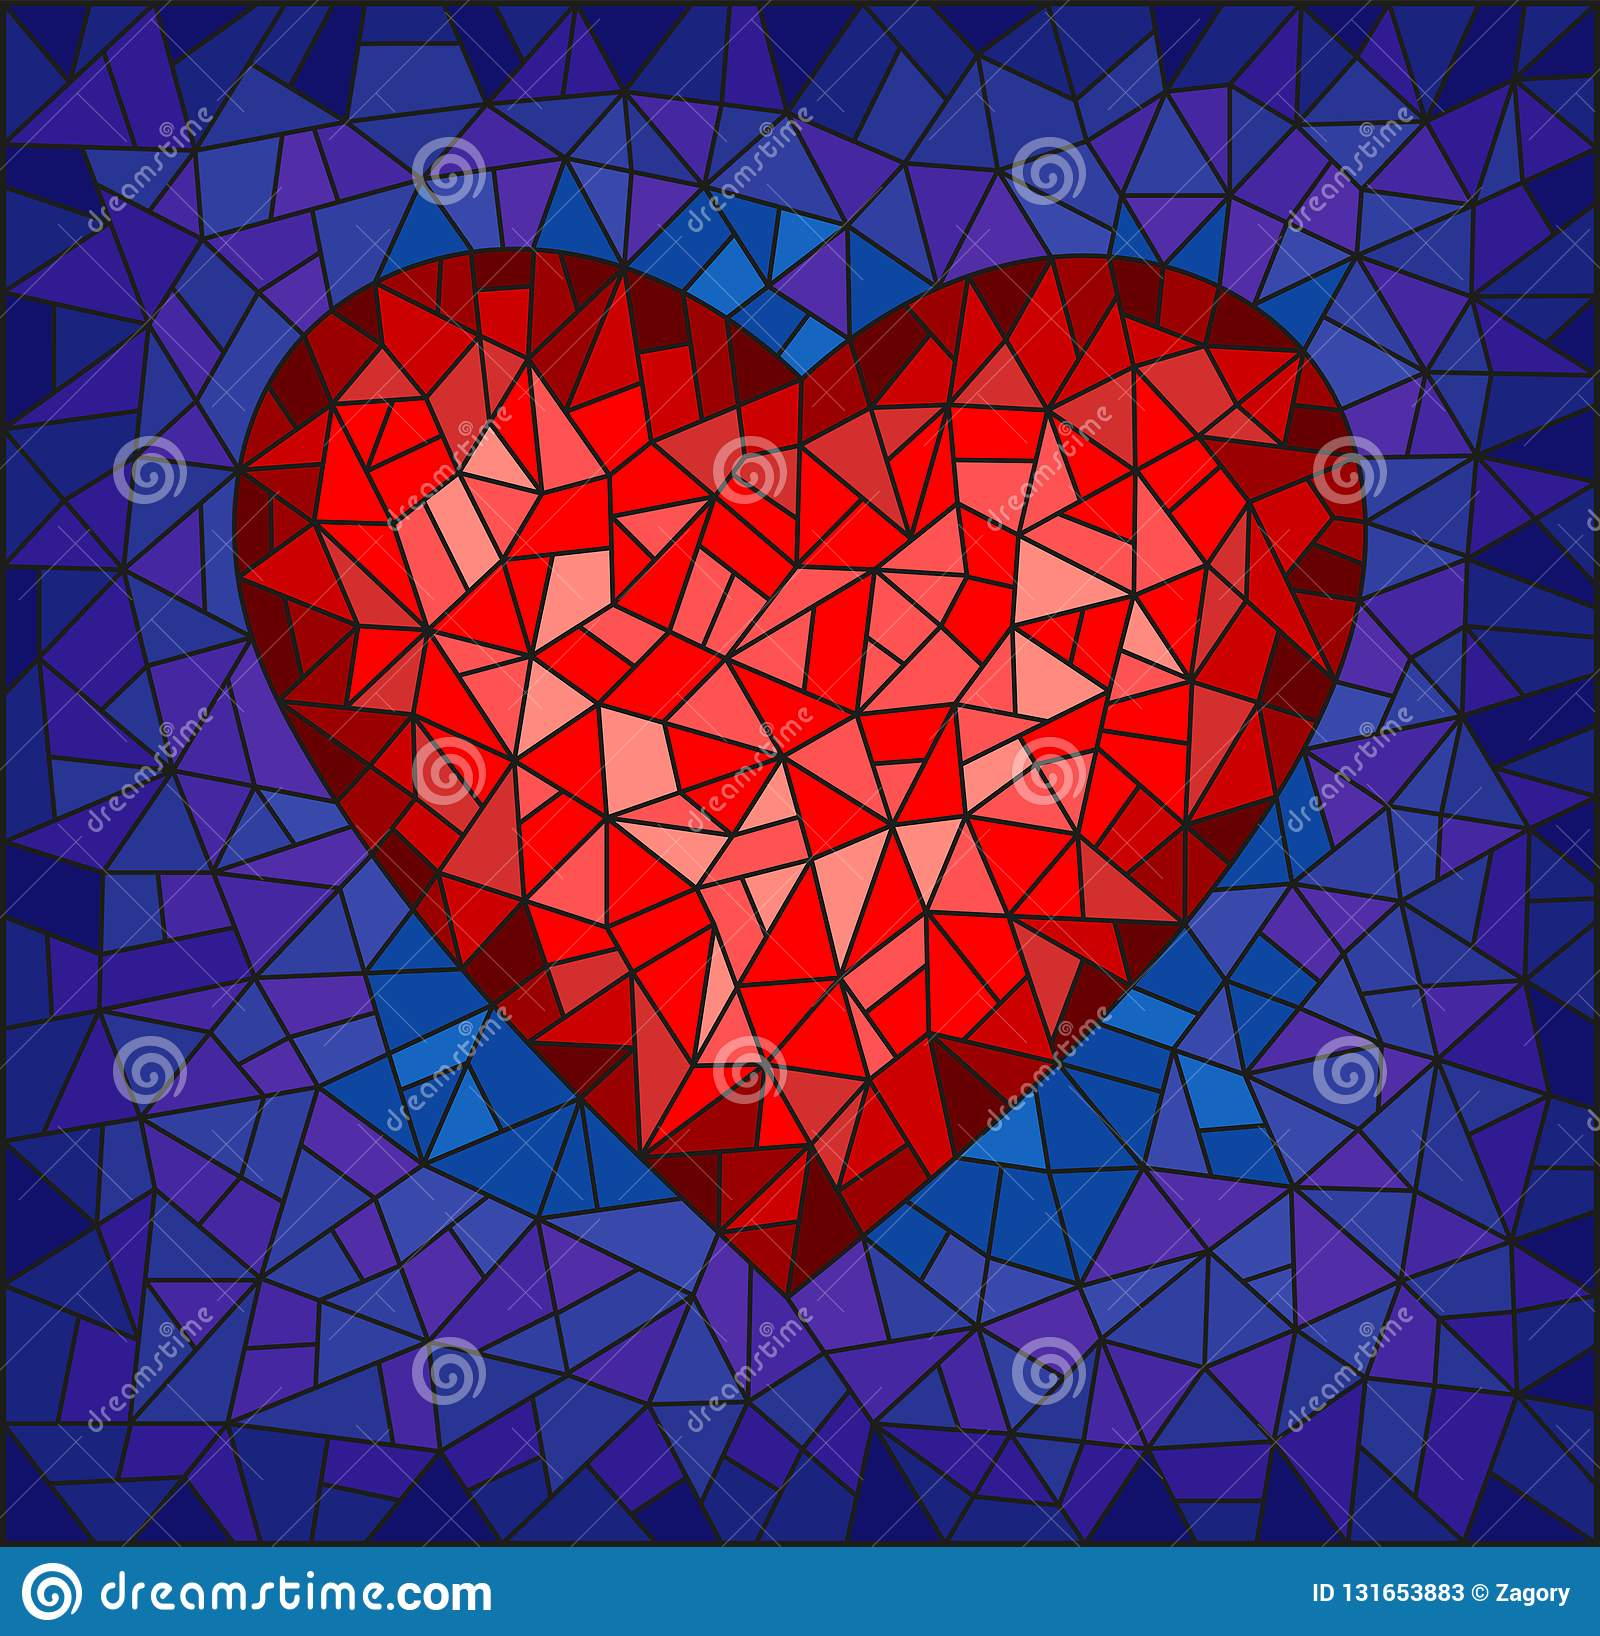 Stained Glass Illustration With Abstract Red Heart On Blue Background Rectangular Image Stock Vector Illustration Of Mosaic Blue 131653883